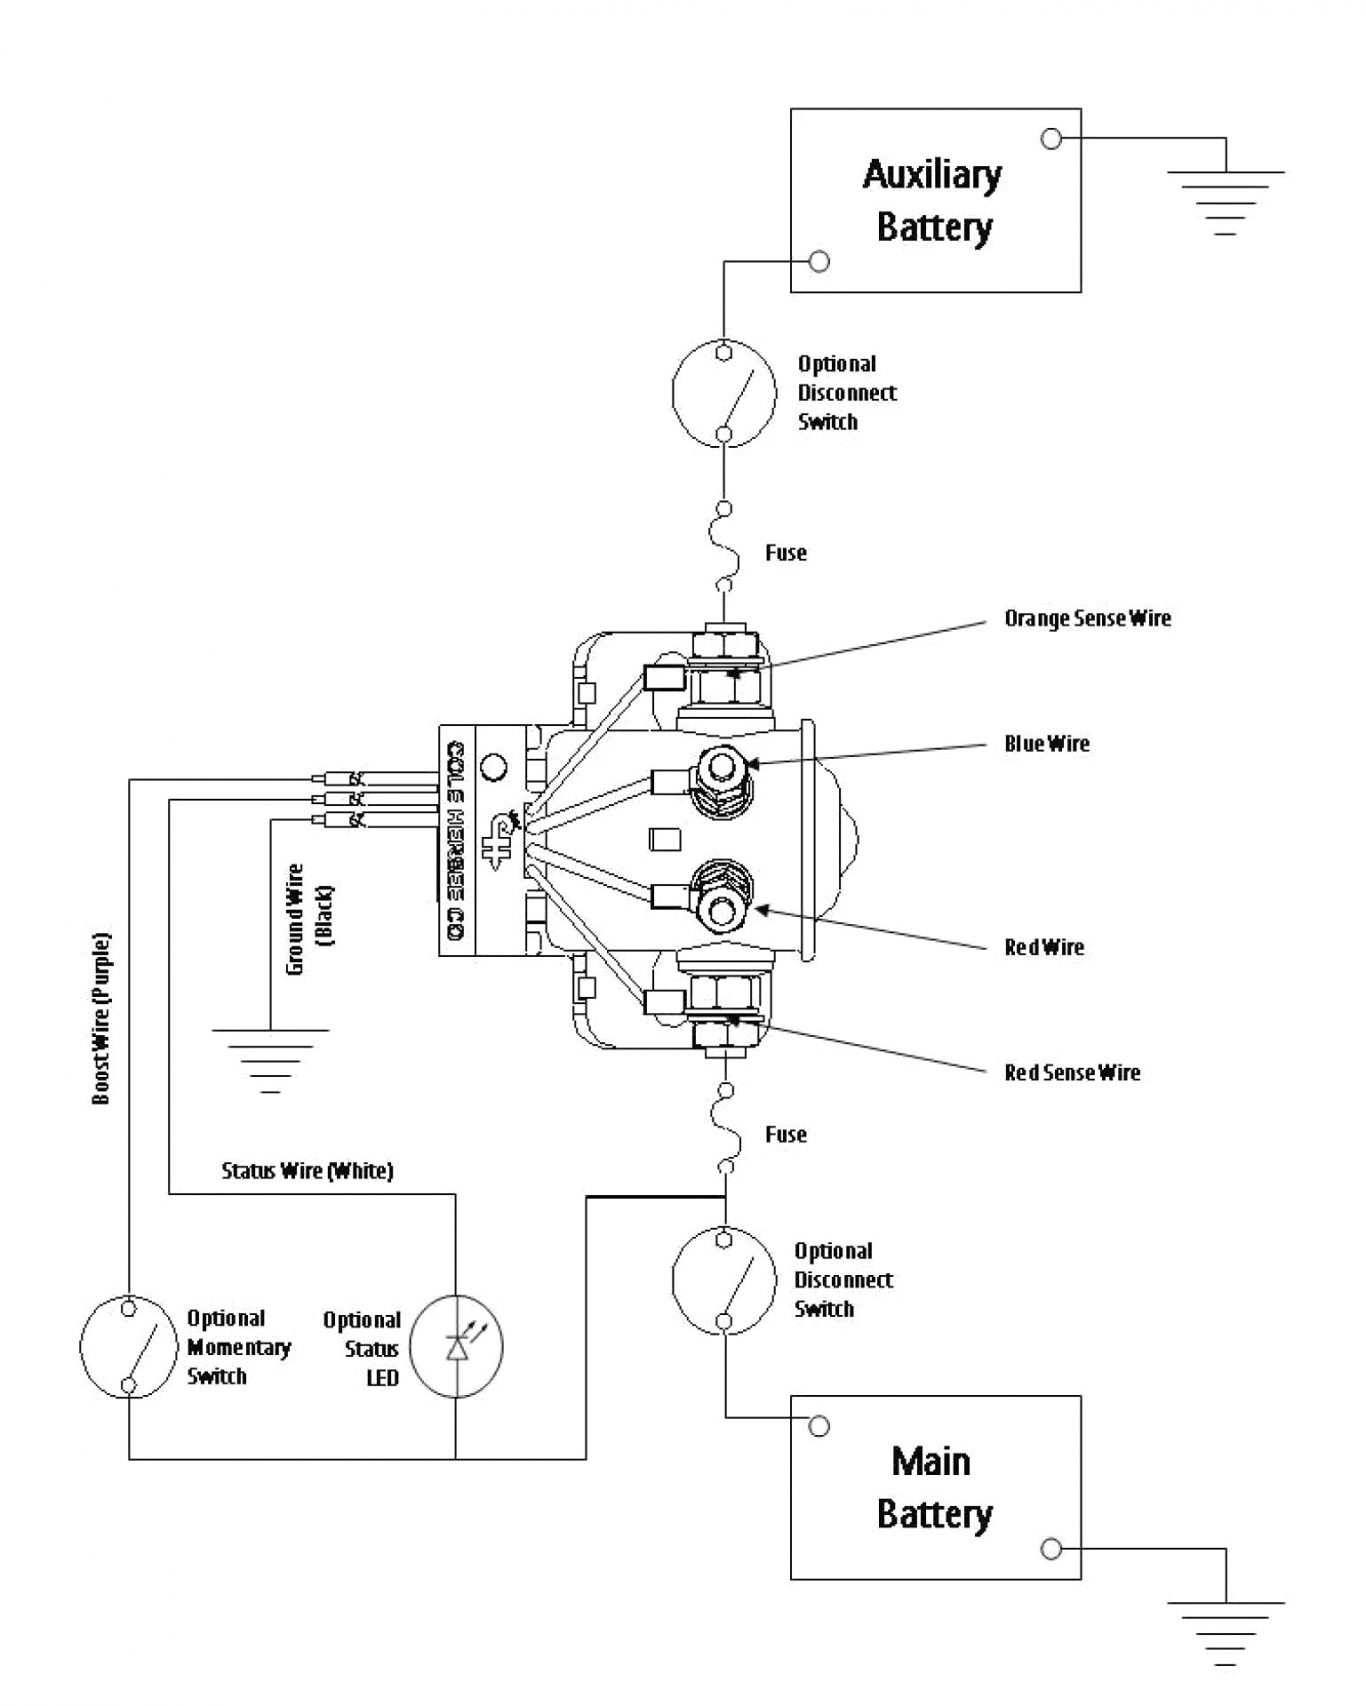 hight resolution of ingersoll rand 2475n7 5 wiring diagram download